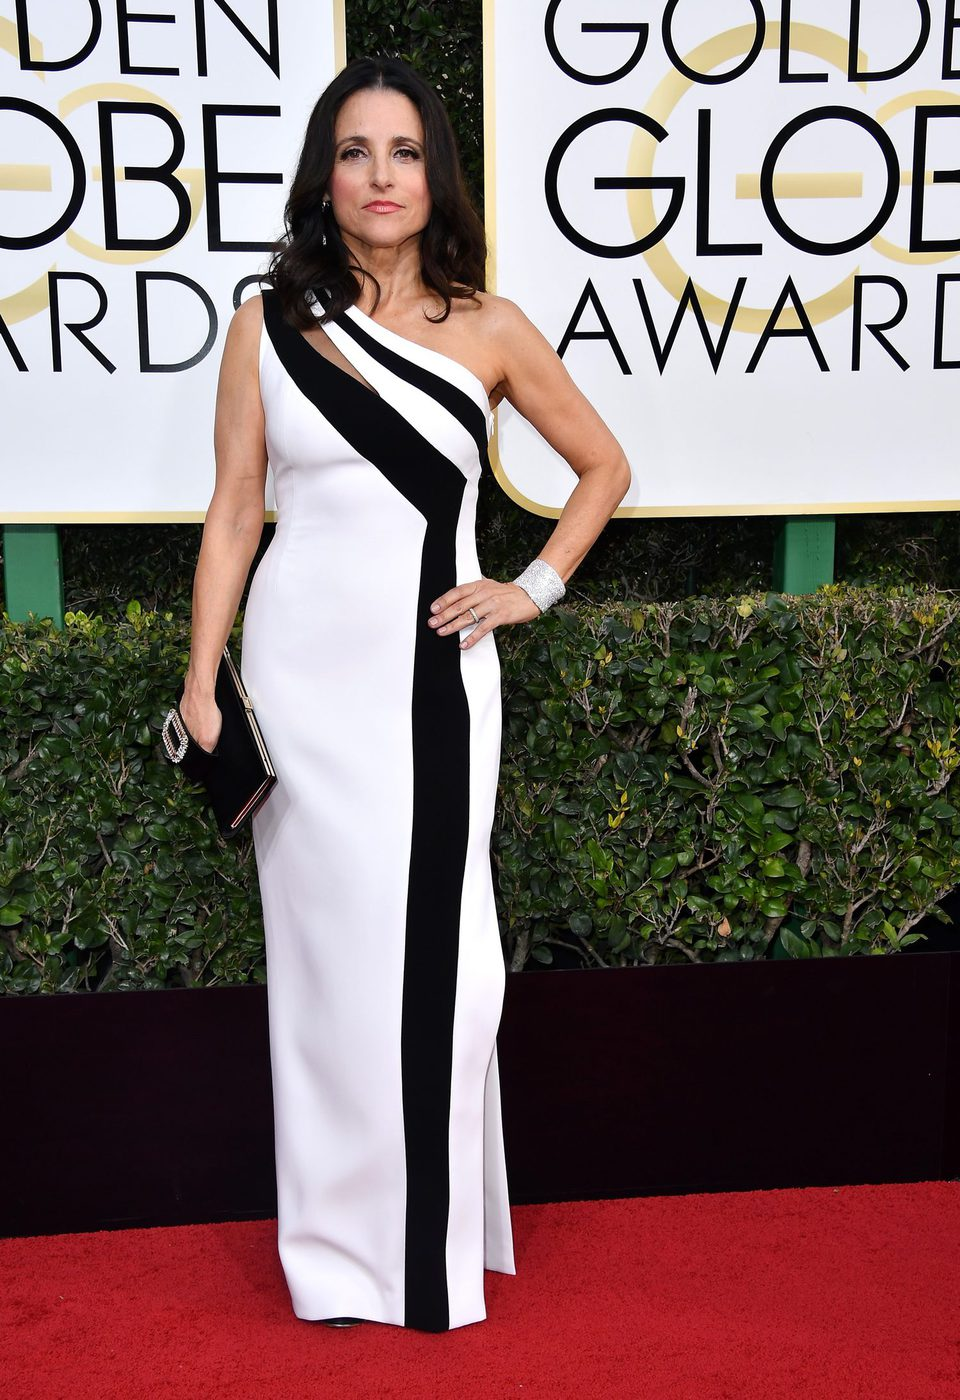 Julia Louis-Dreyfus at Golden Globes 2017 red carpet